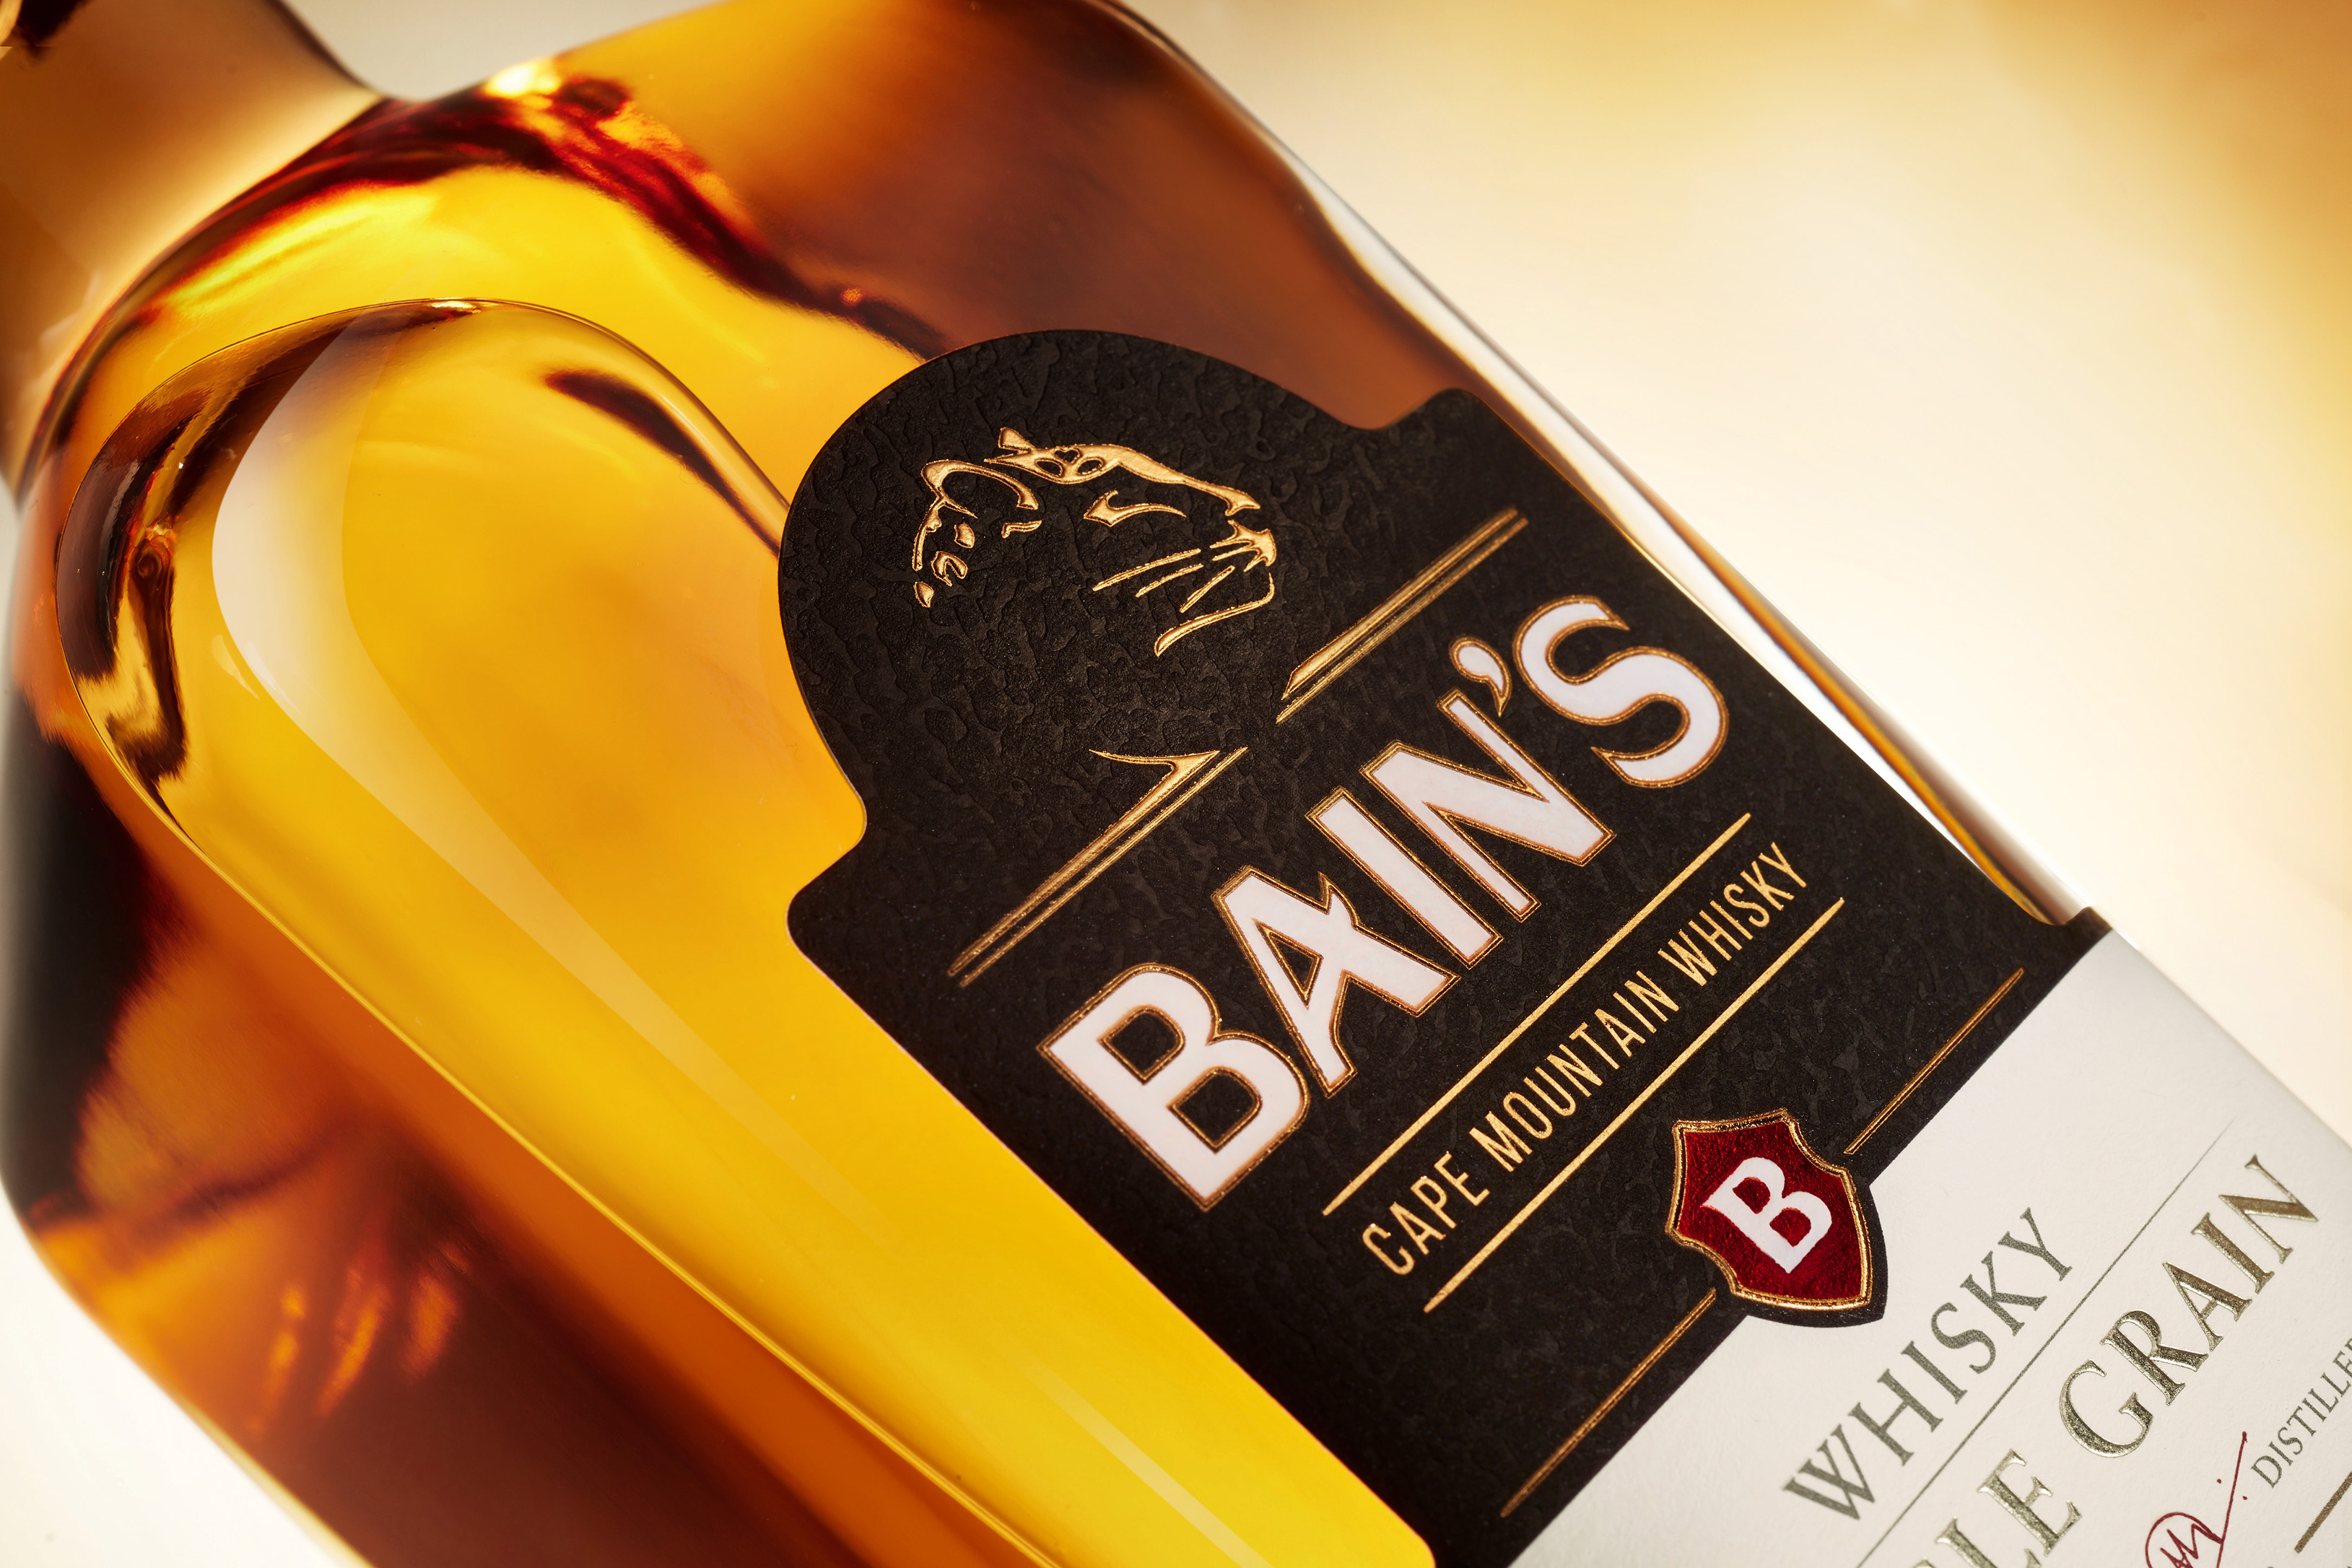 Bain's Wins World's Best Grain Whisky photo